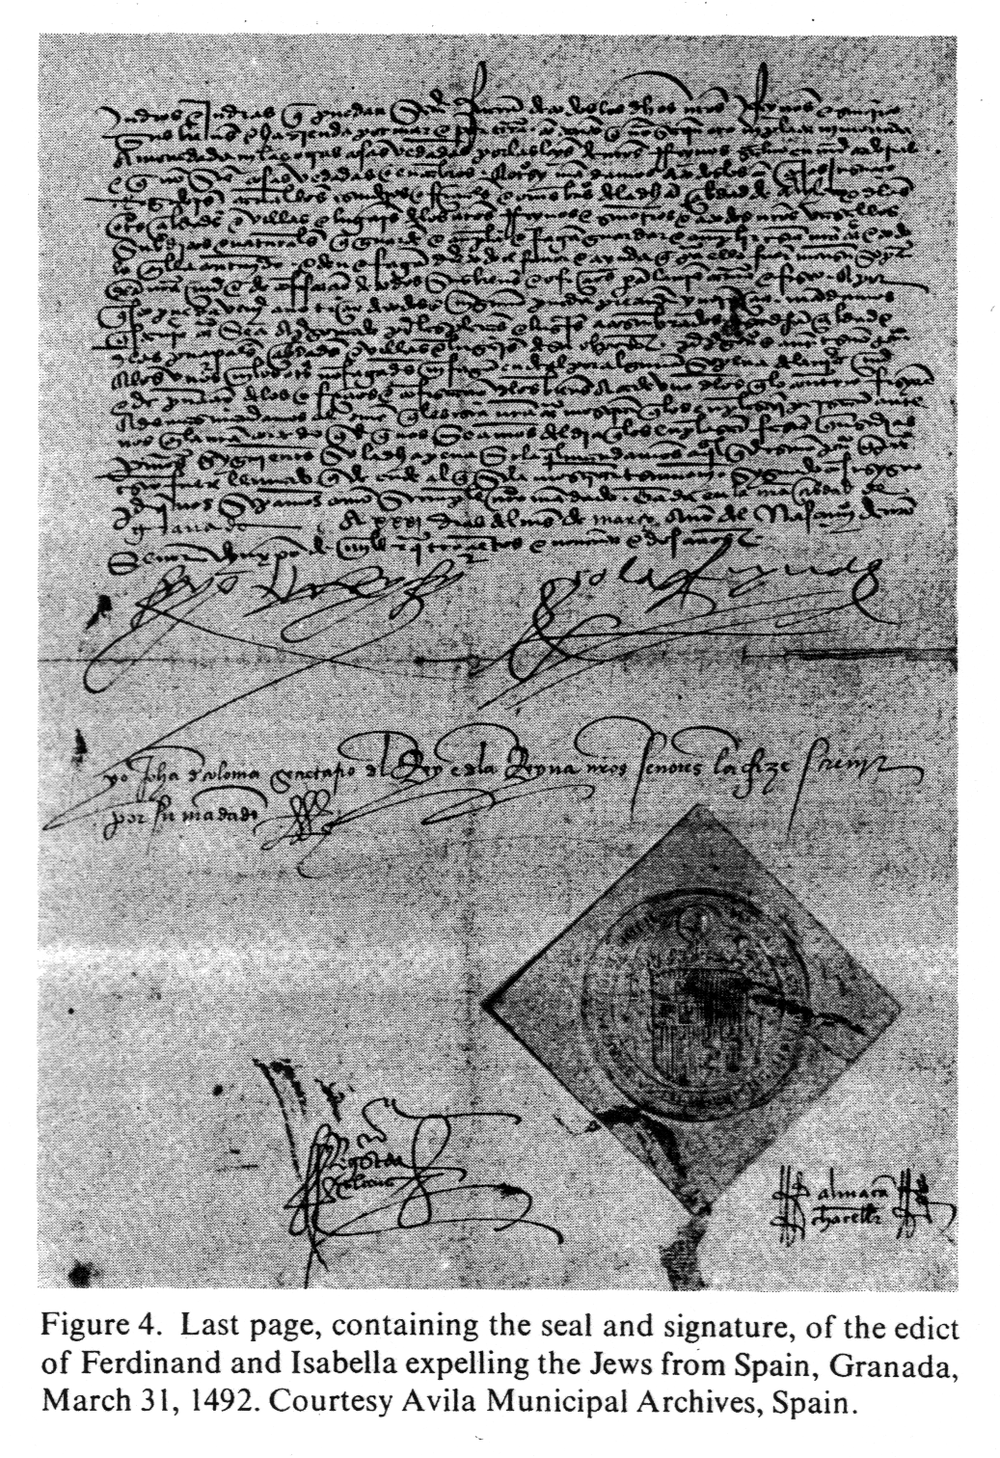 An image of the last page of the Alhambra Decree, or Edict of Expulsion of the Jews from Spain, courtesy of Google images.